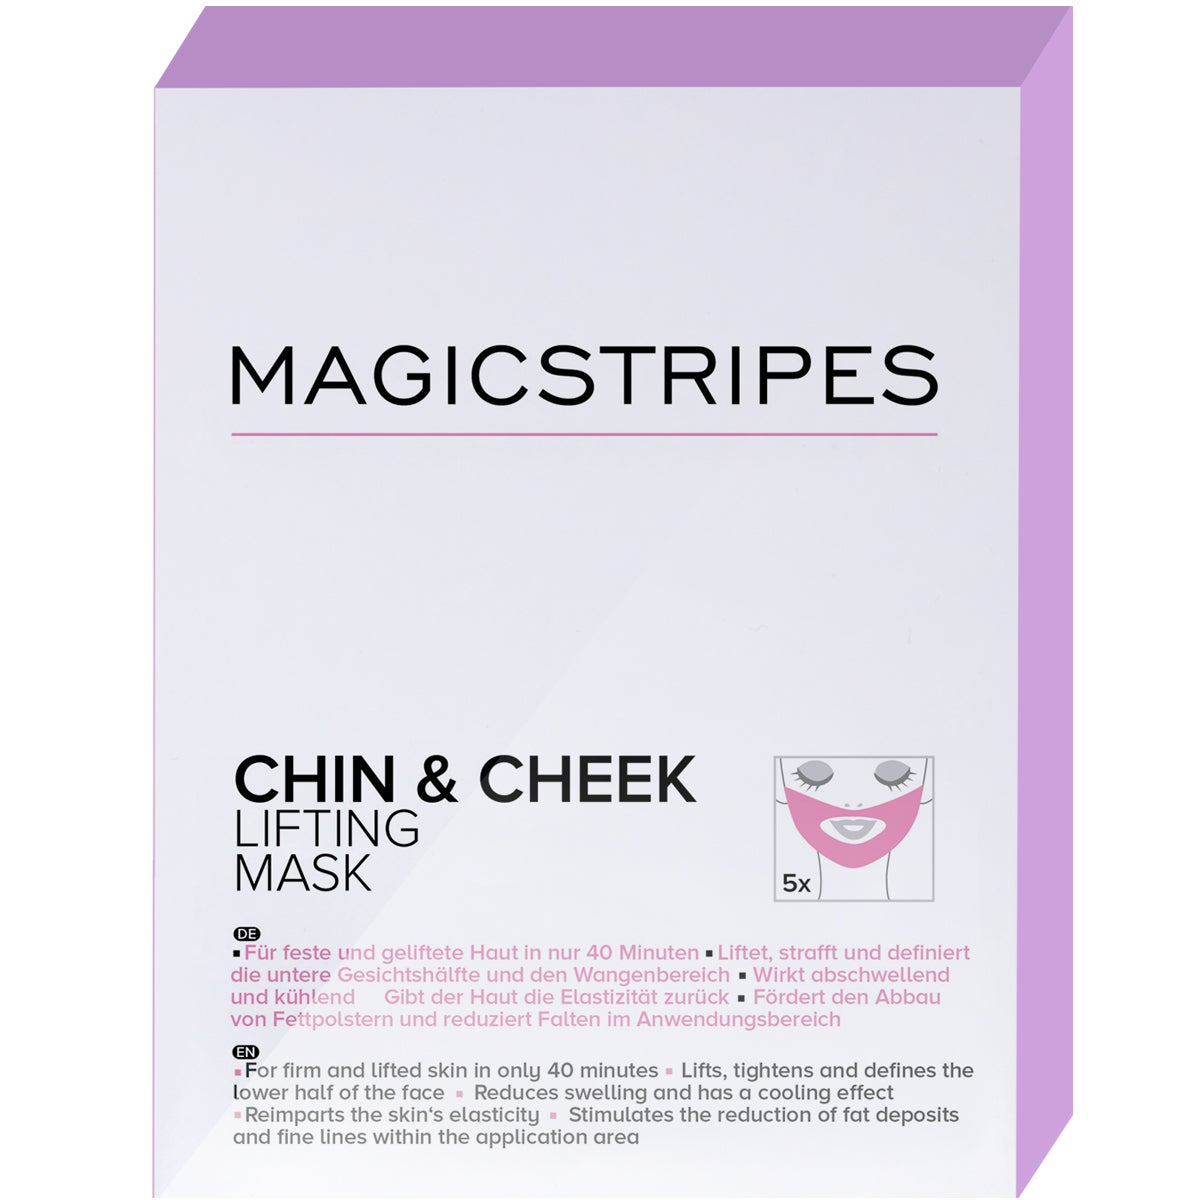 Magicstripes Chin & Cheek Lifting Mask